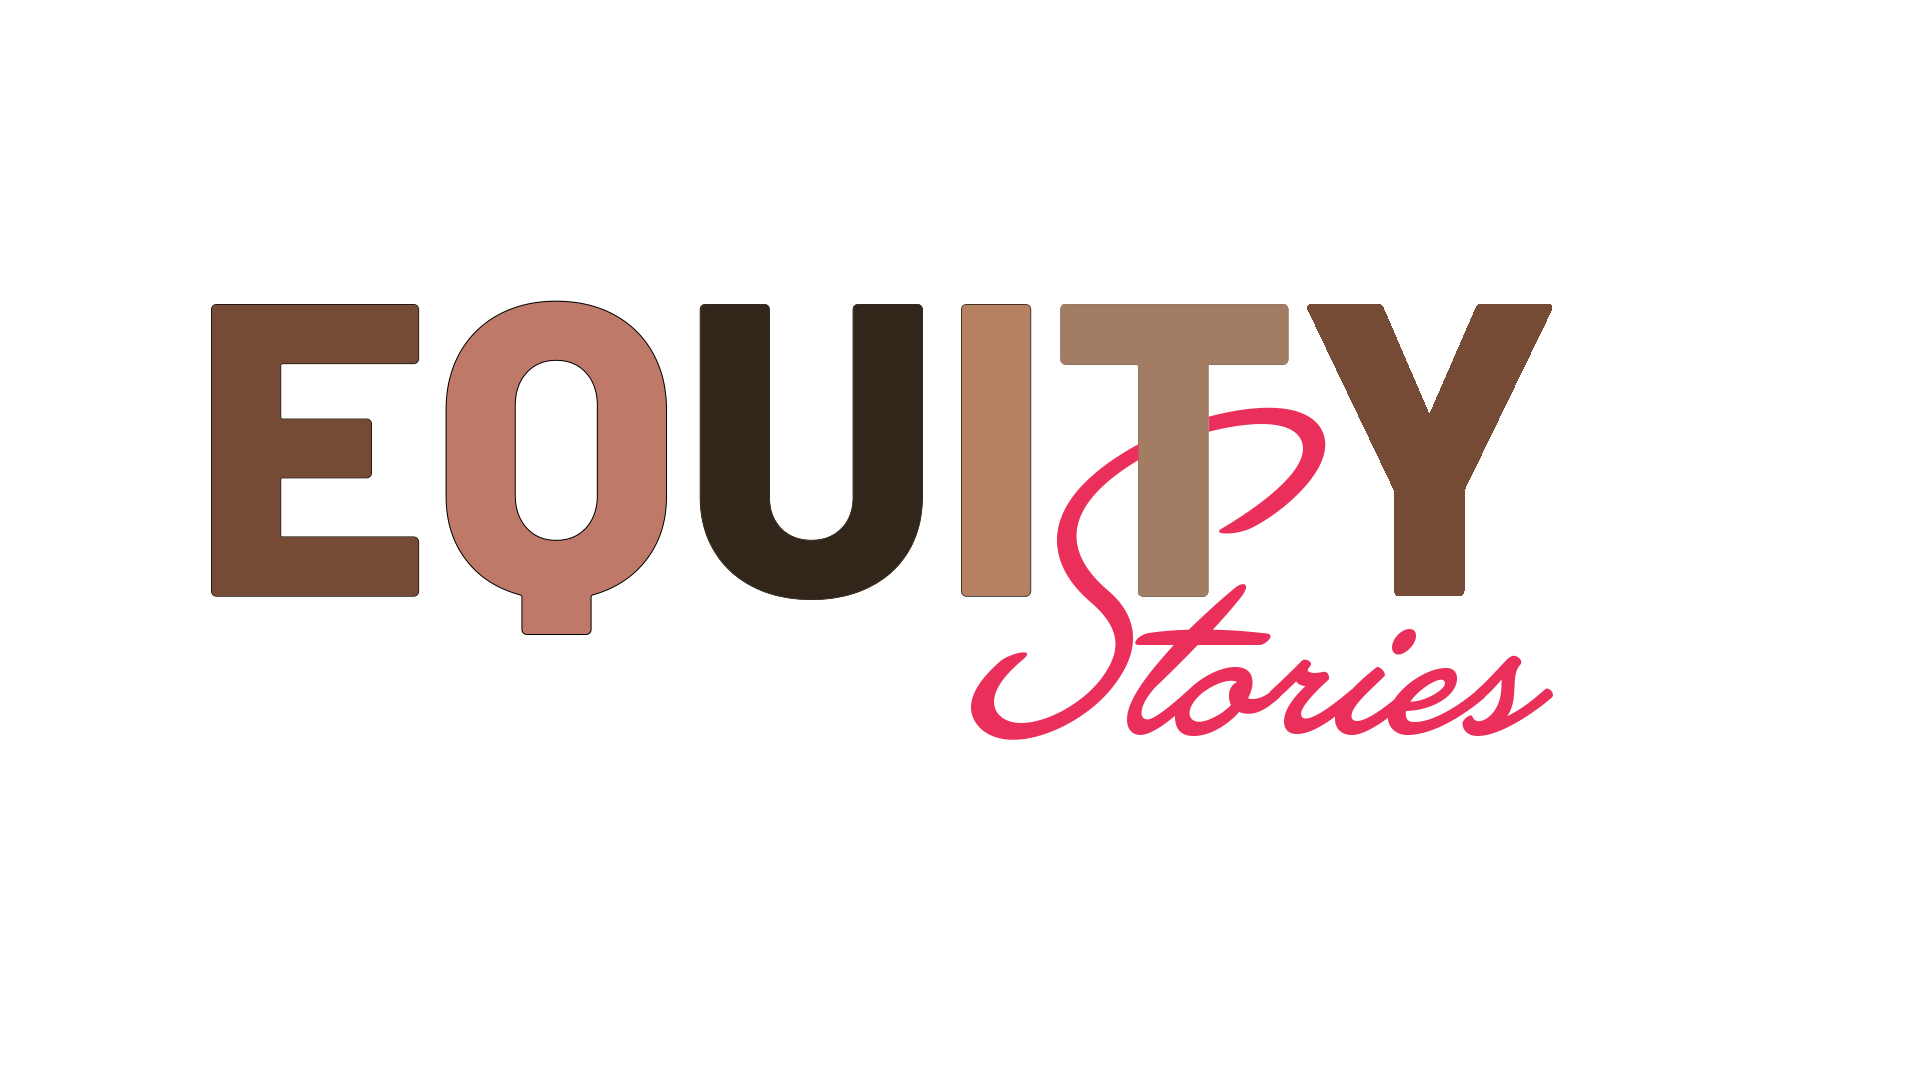 Equity Stories